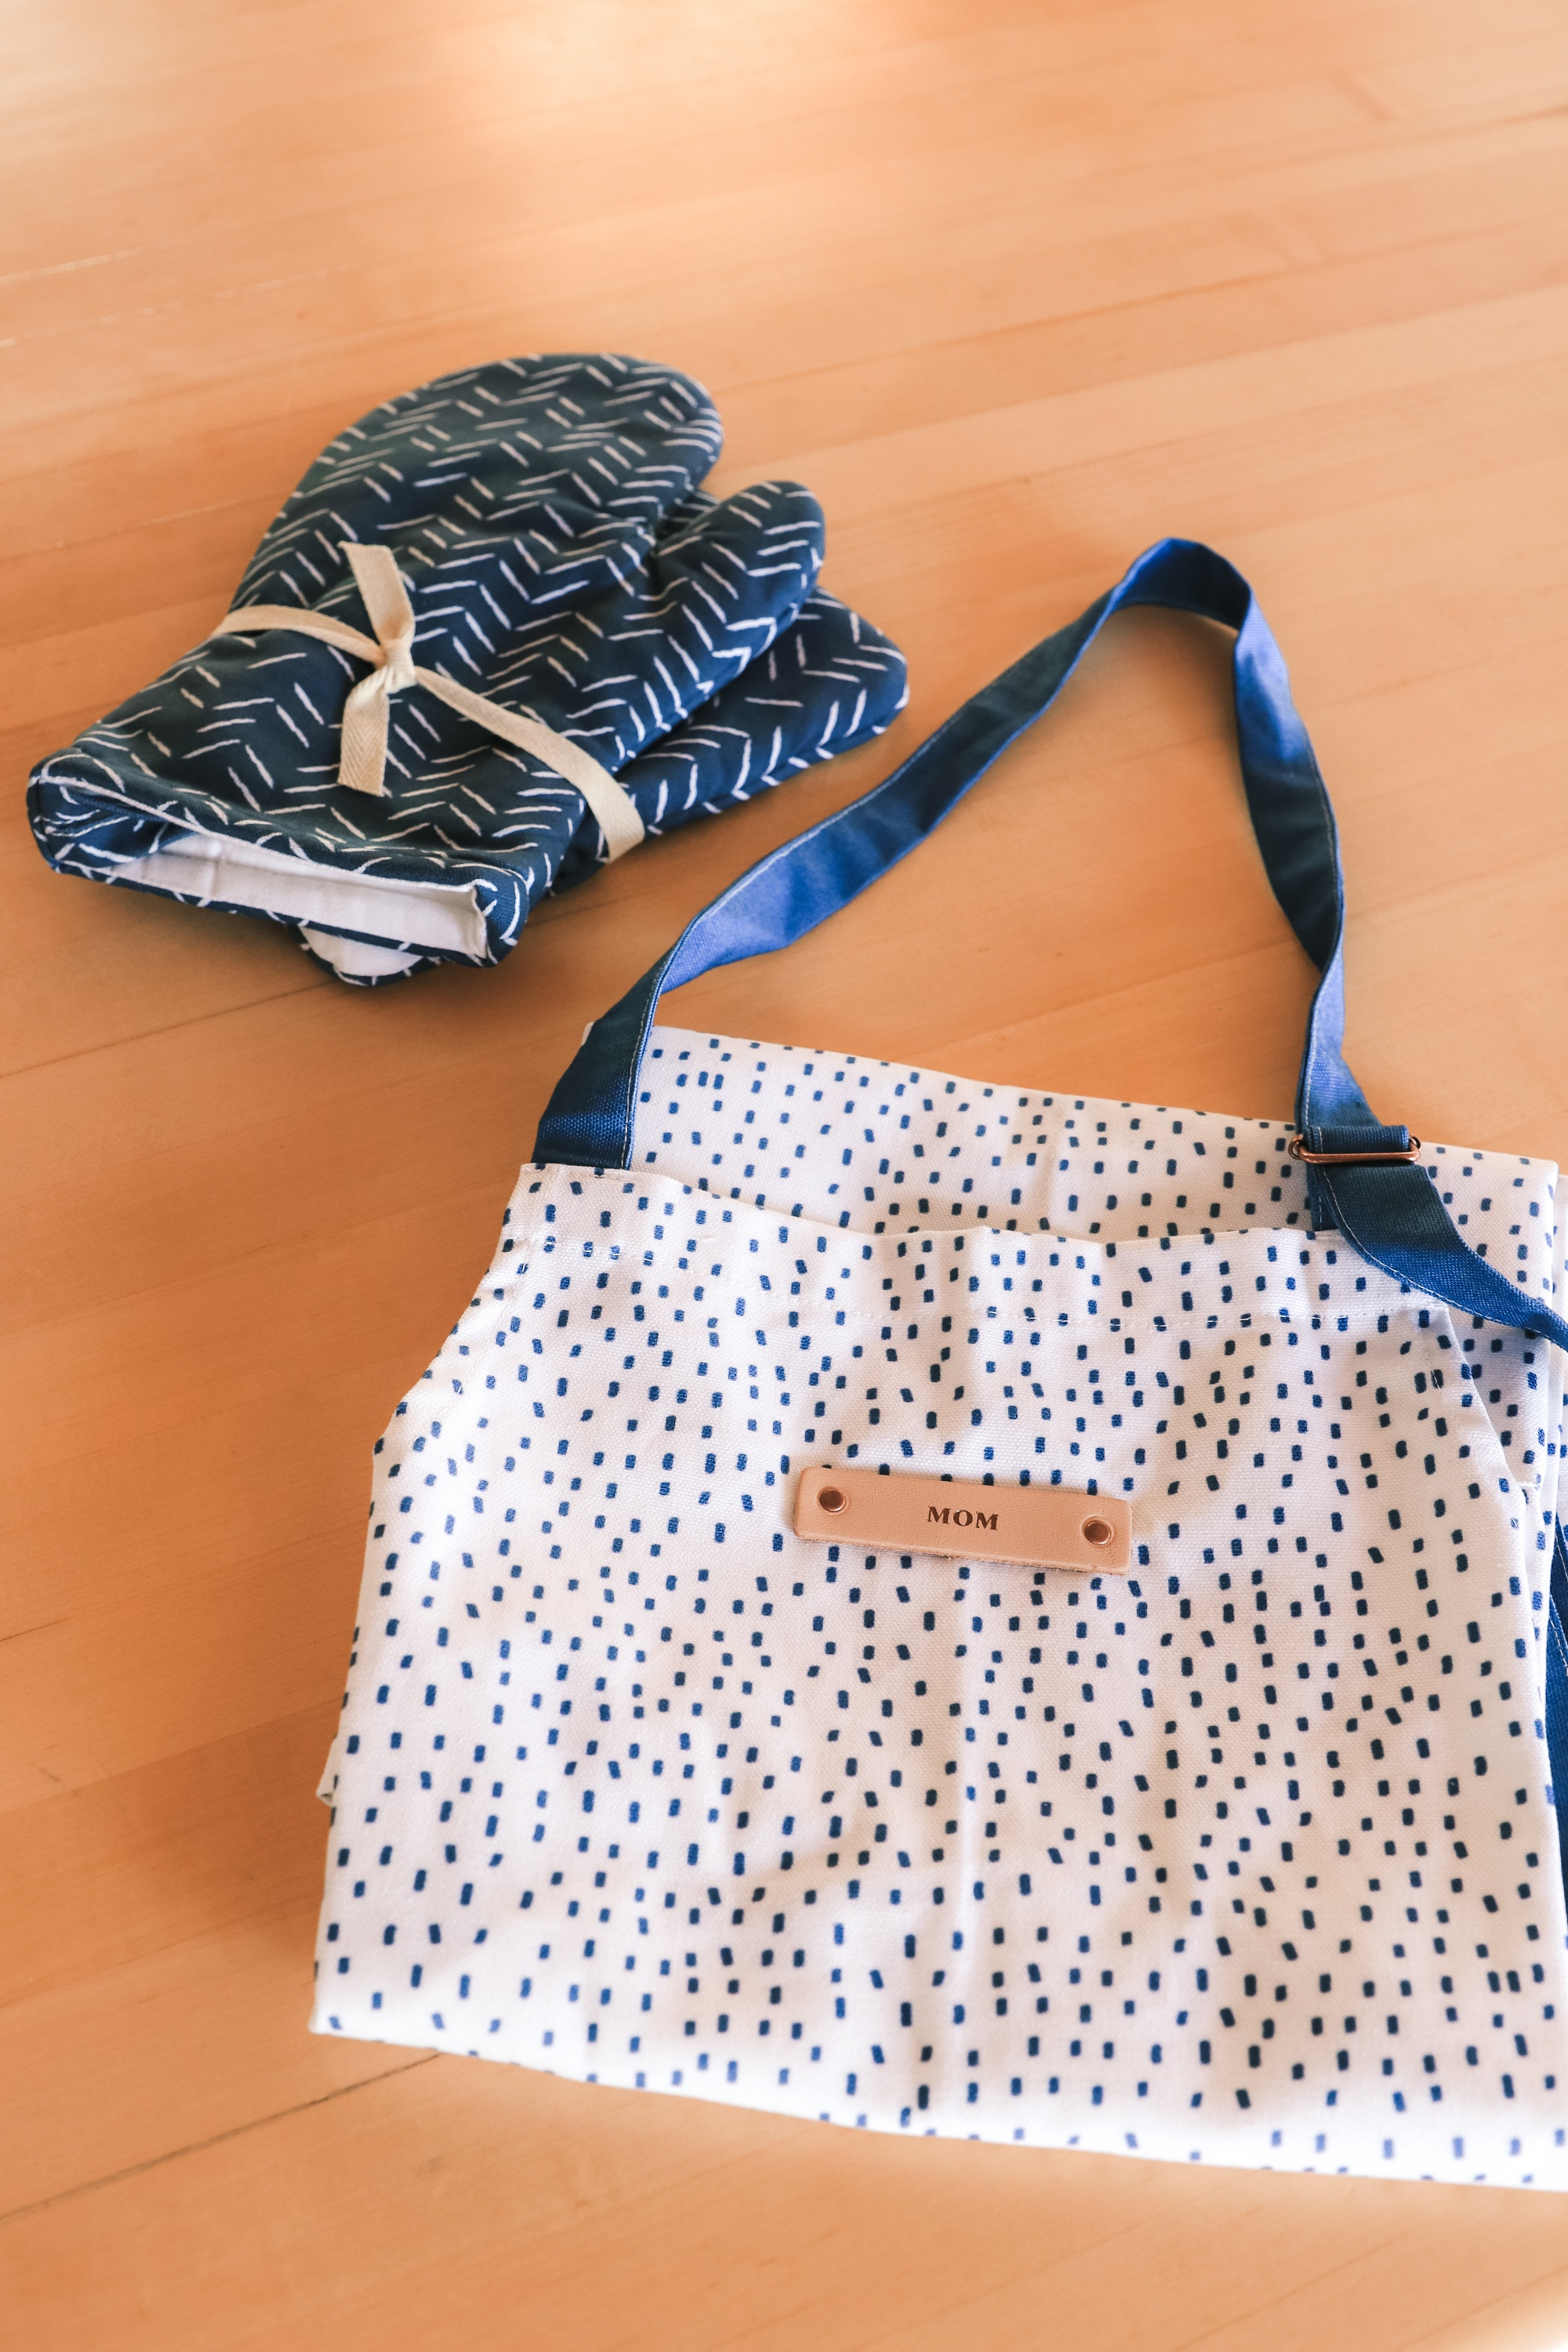 """Personalized Gifts, Erin Busbee of Busbee Style sharing a blue herringbone mitt and potholder set and blue and white speckled apron with """"mom"""" from Minted in Telluride, Colorado"""